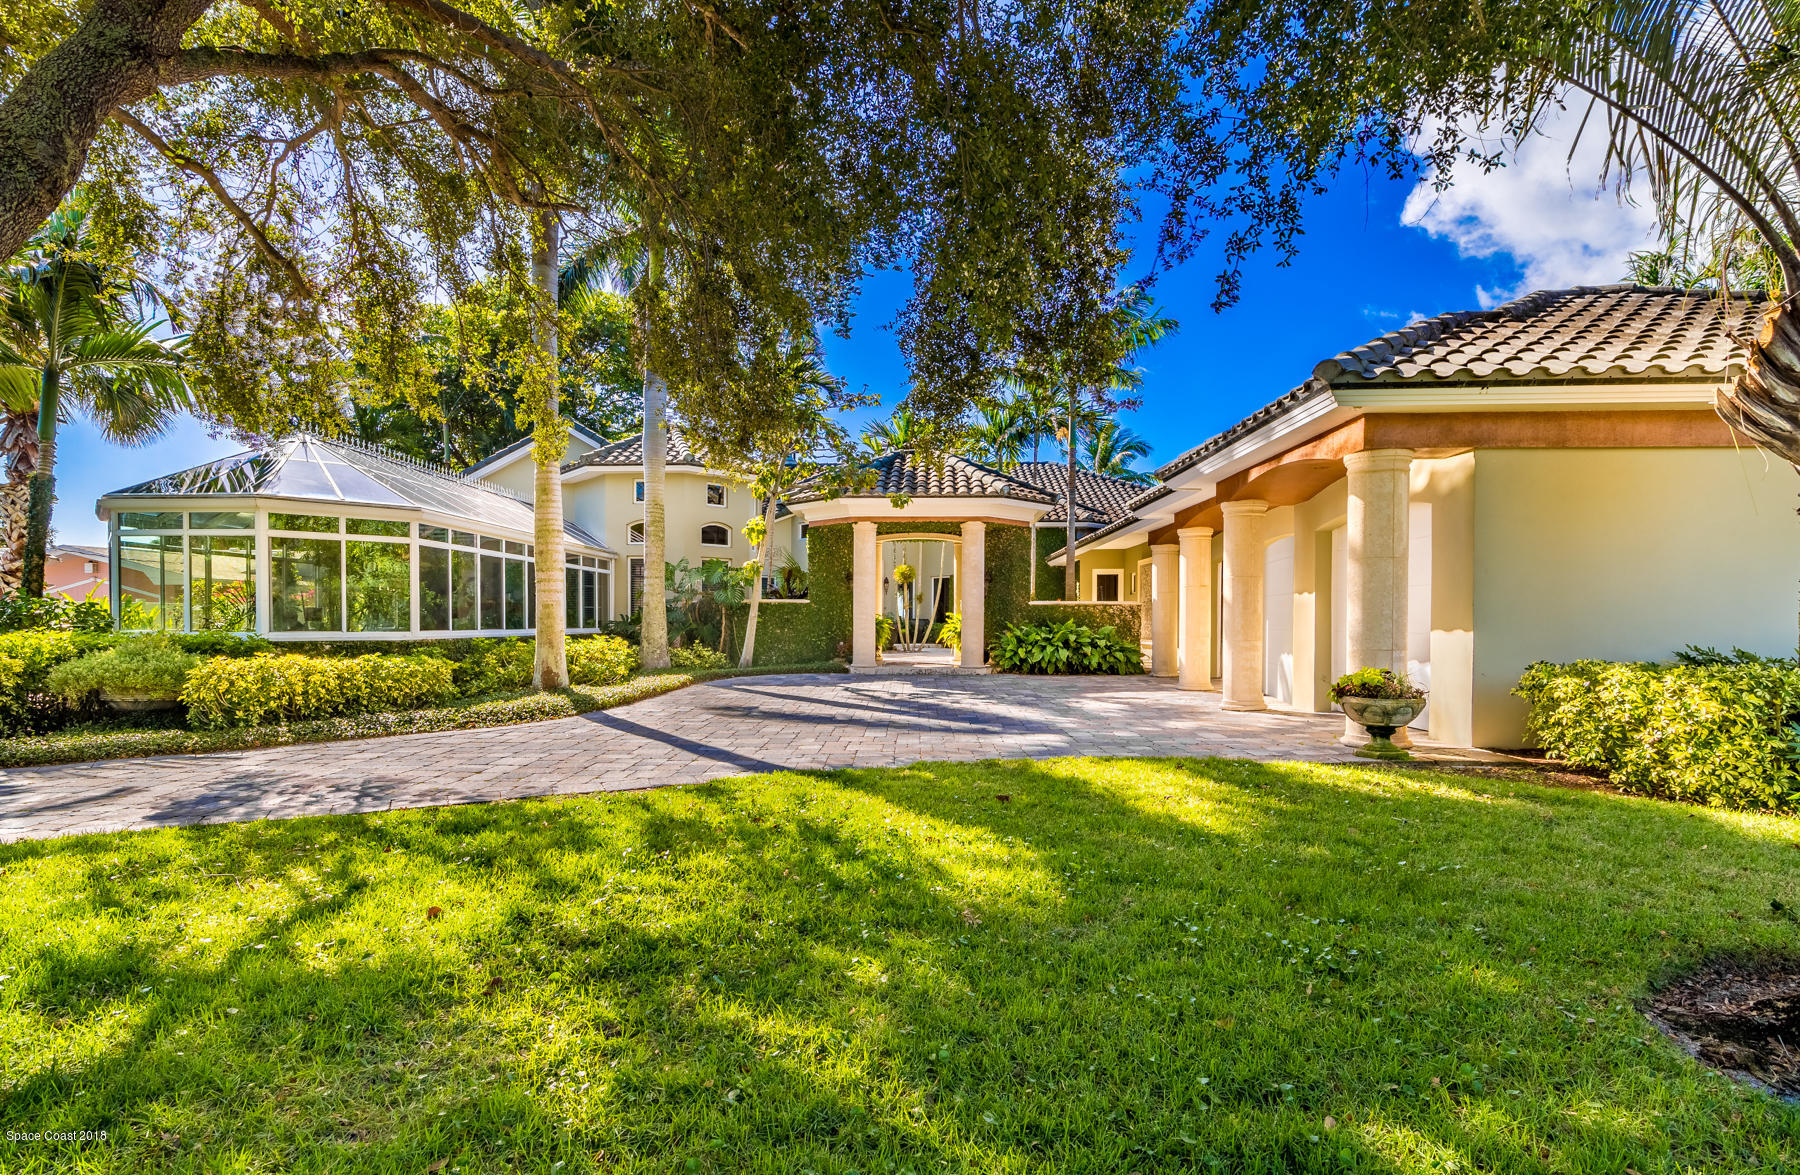 Property for Sale at 200 Riverside Melbourne Beach, Florida 32951 United States